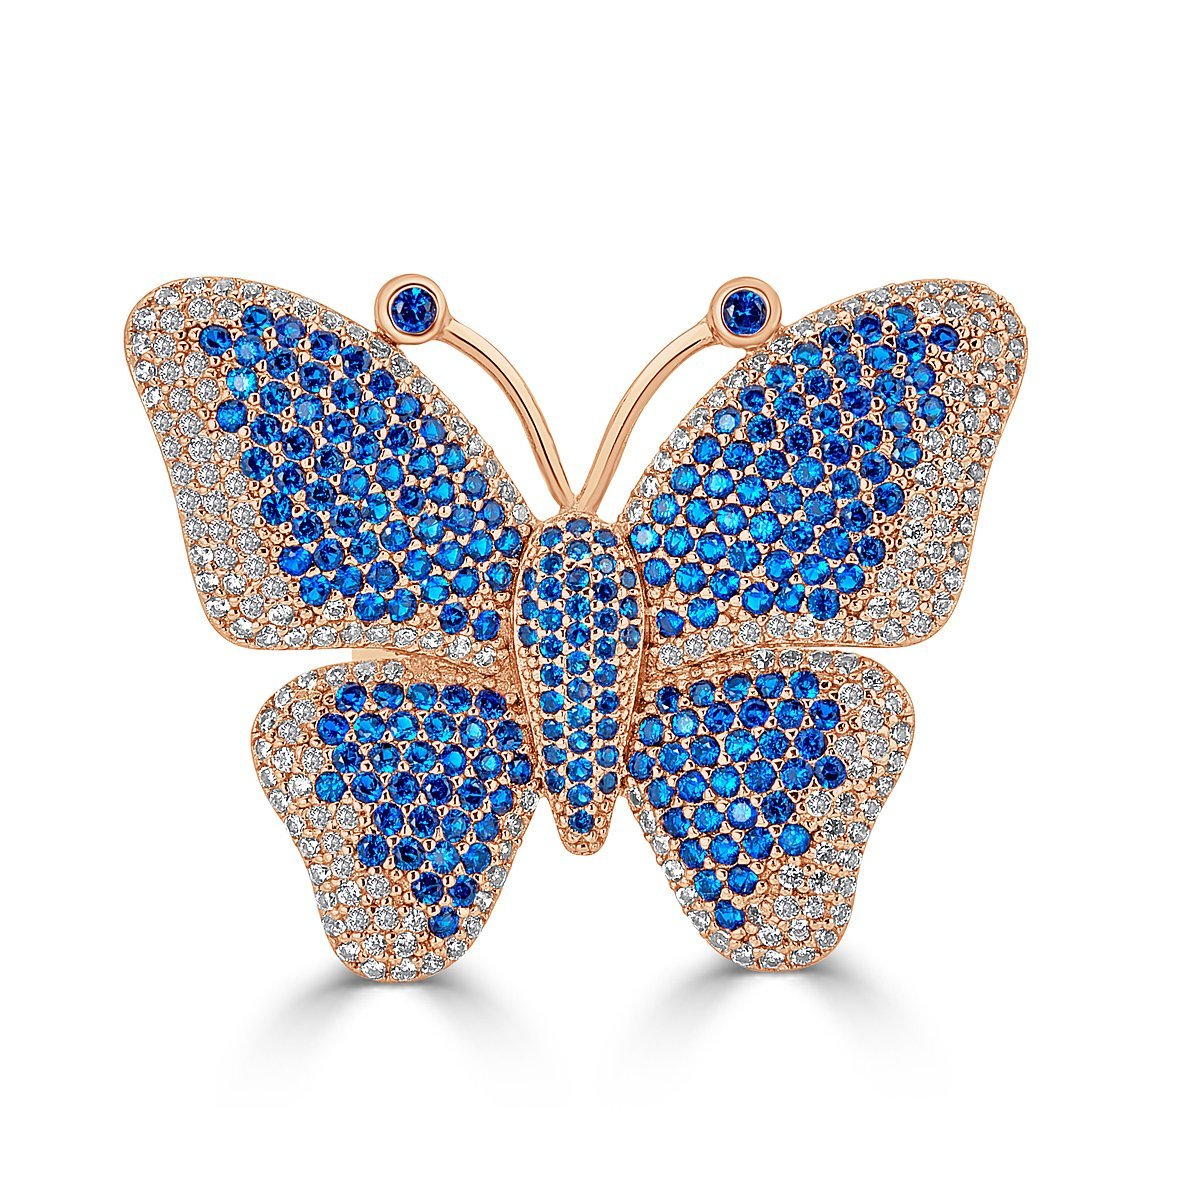 Rose Gold Plated Sterling Silver Cubic Zirconia Pave Butterfly Statement Ring by Caratina (Image #3)